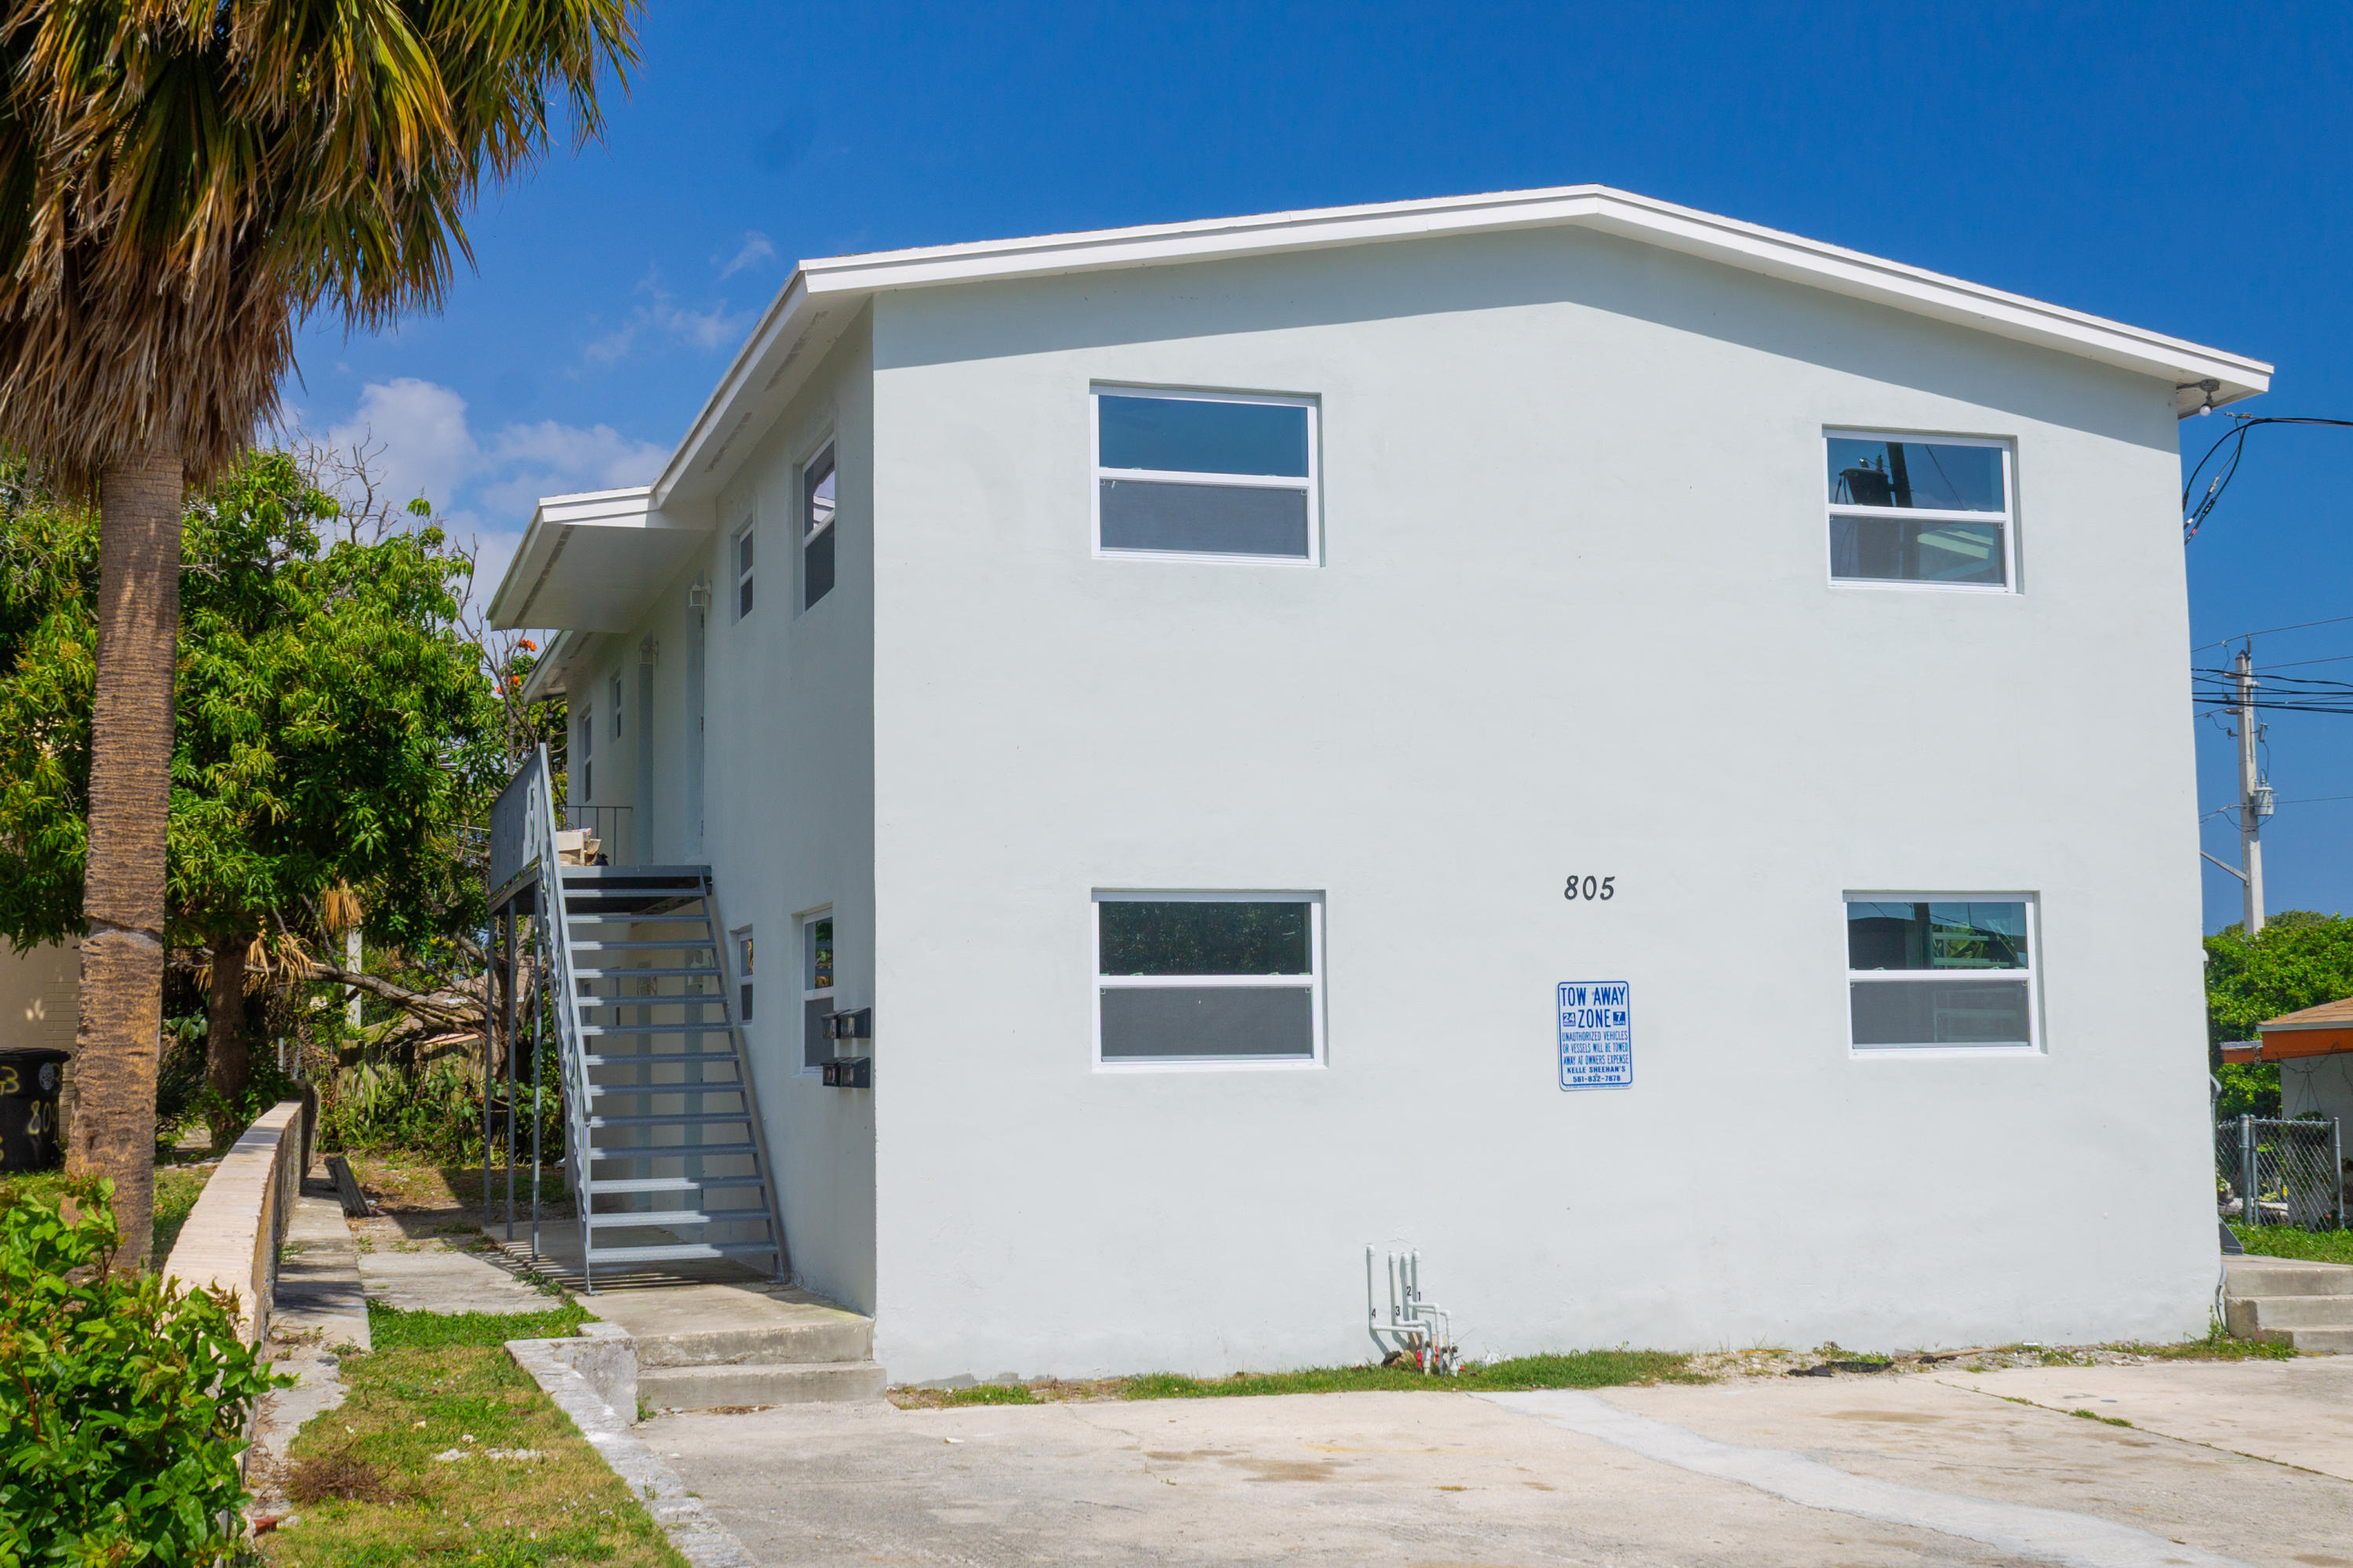 805 19th Street, West Palm Beach, Florida 33407, ,Quadplex,For Sale,19th,RX-10523154